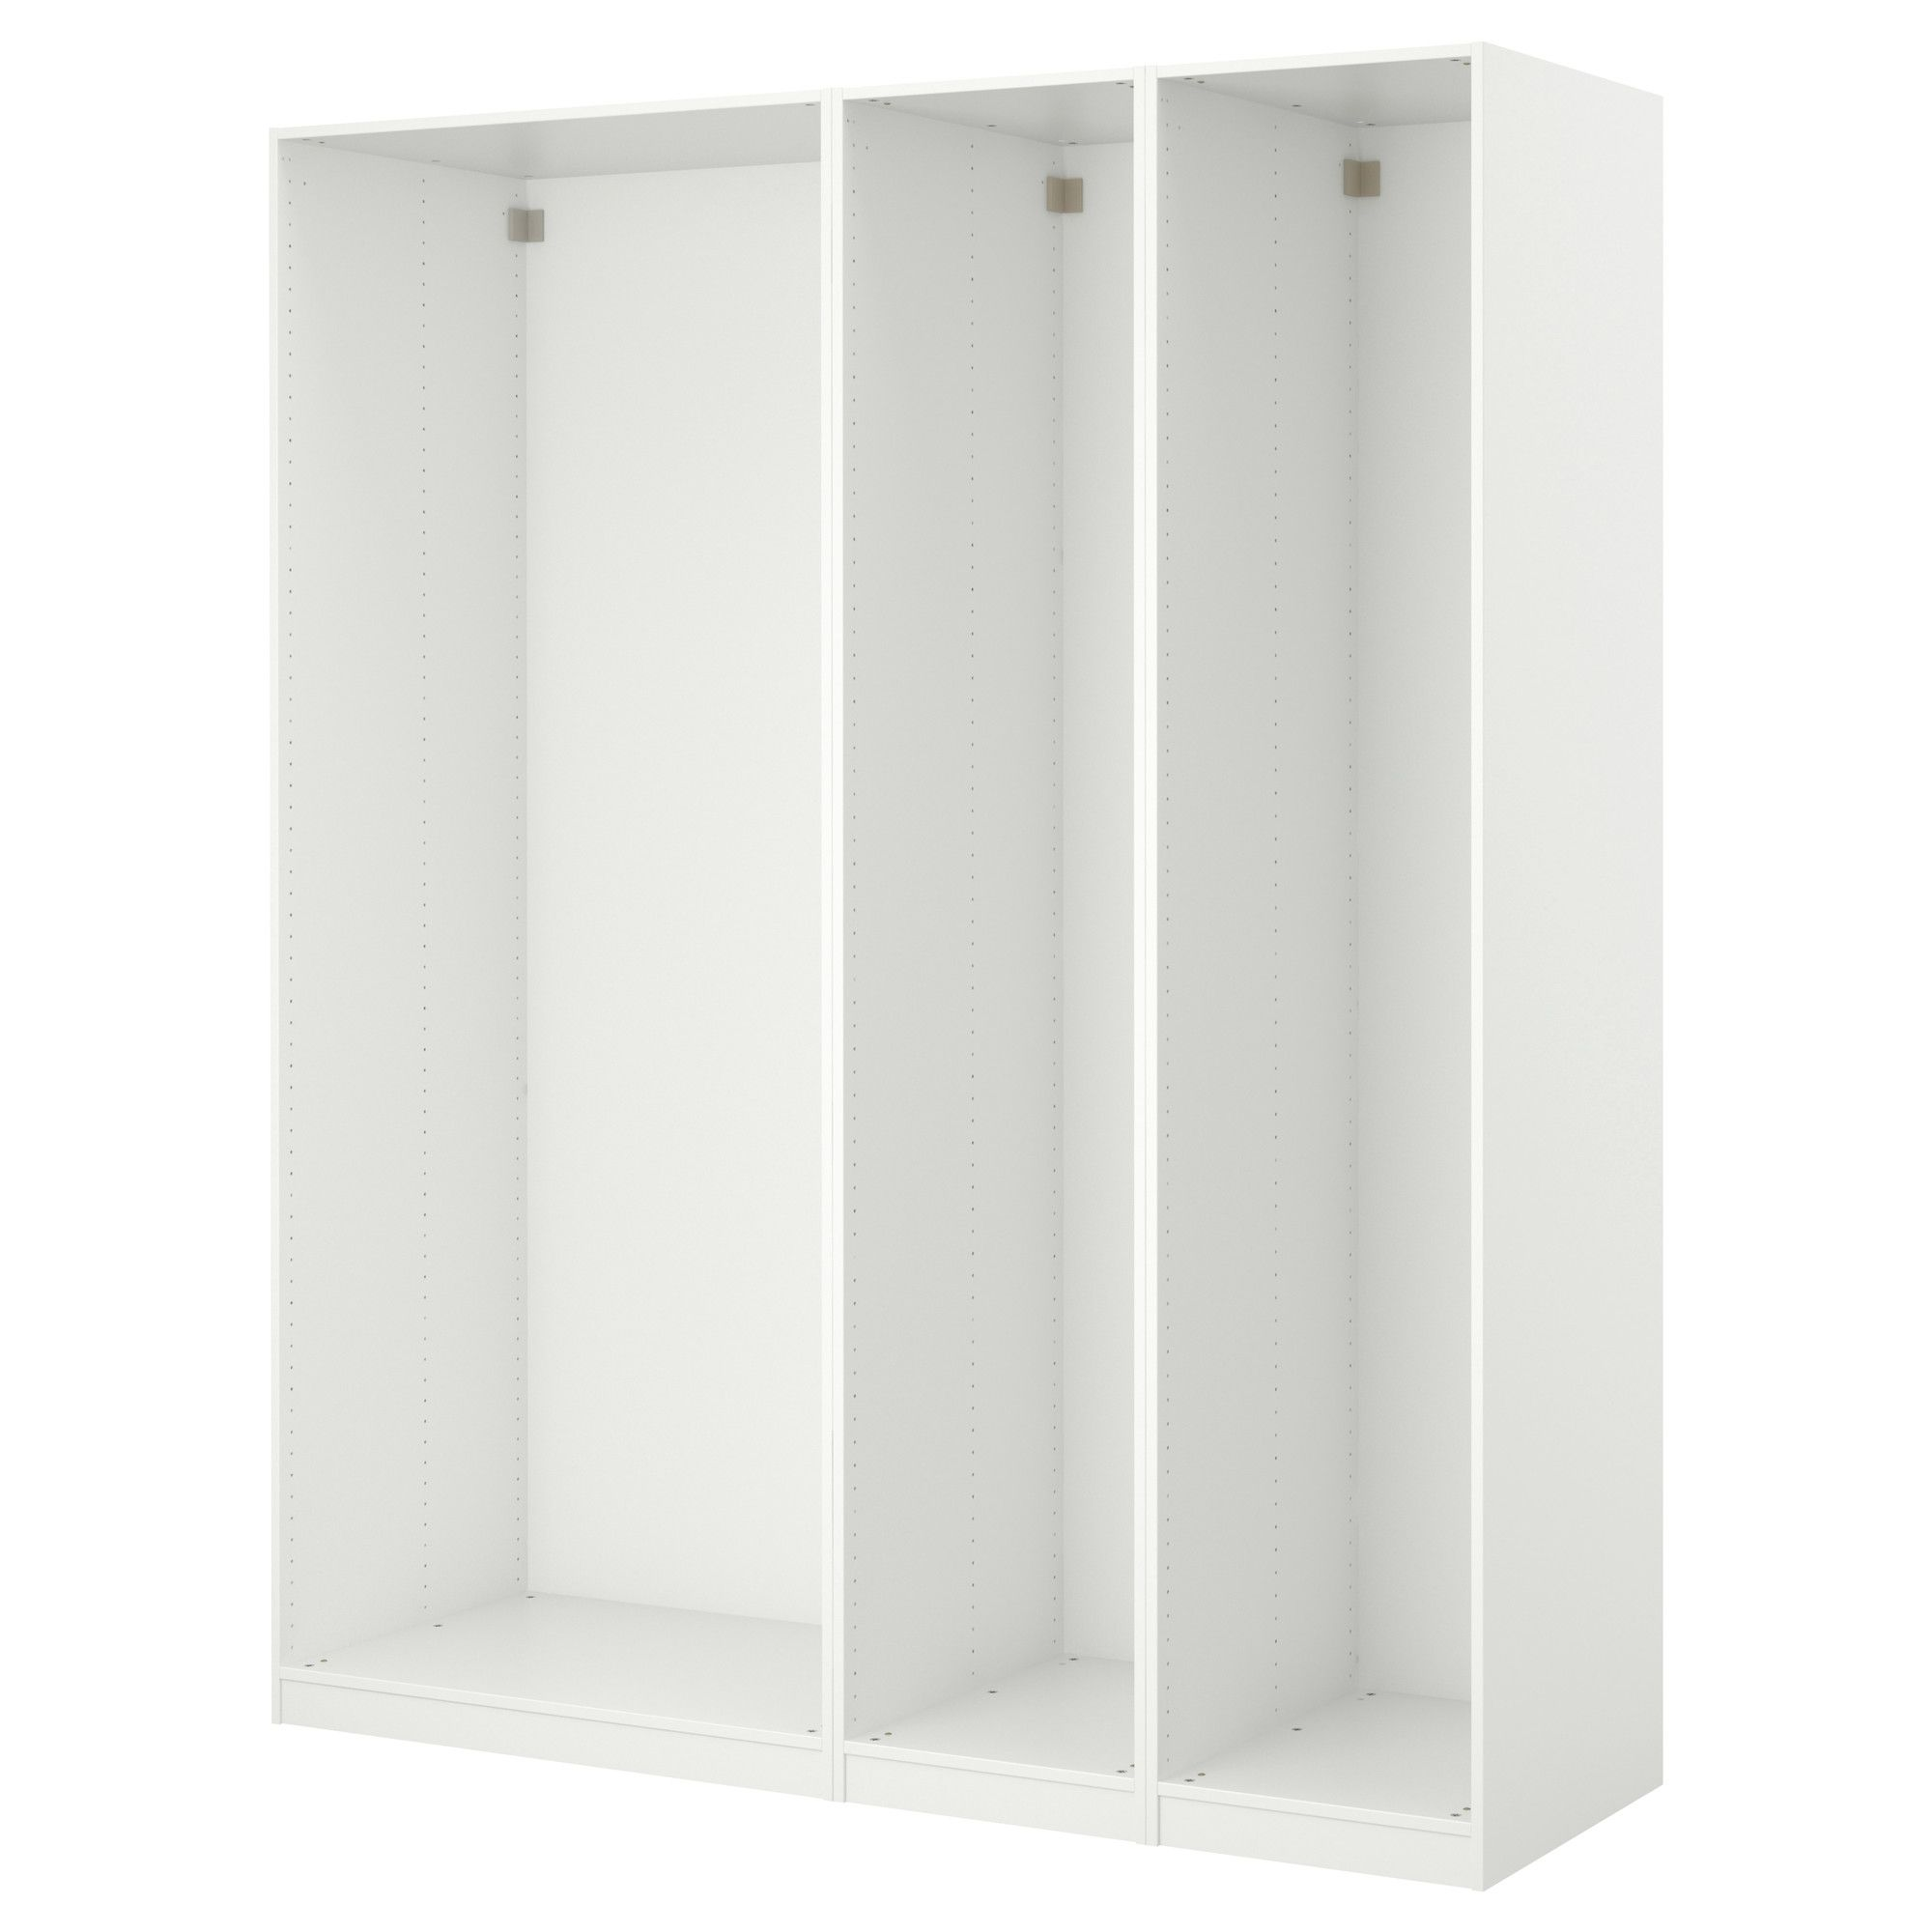 pax 3 caissons armoire blanc armoires blanches caisson et armoires. Black Bedroom Furniture Sets. Home Design Ideas